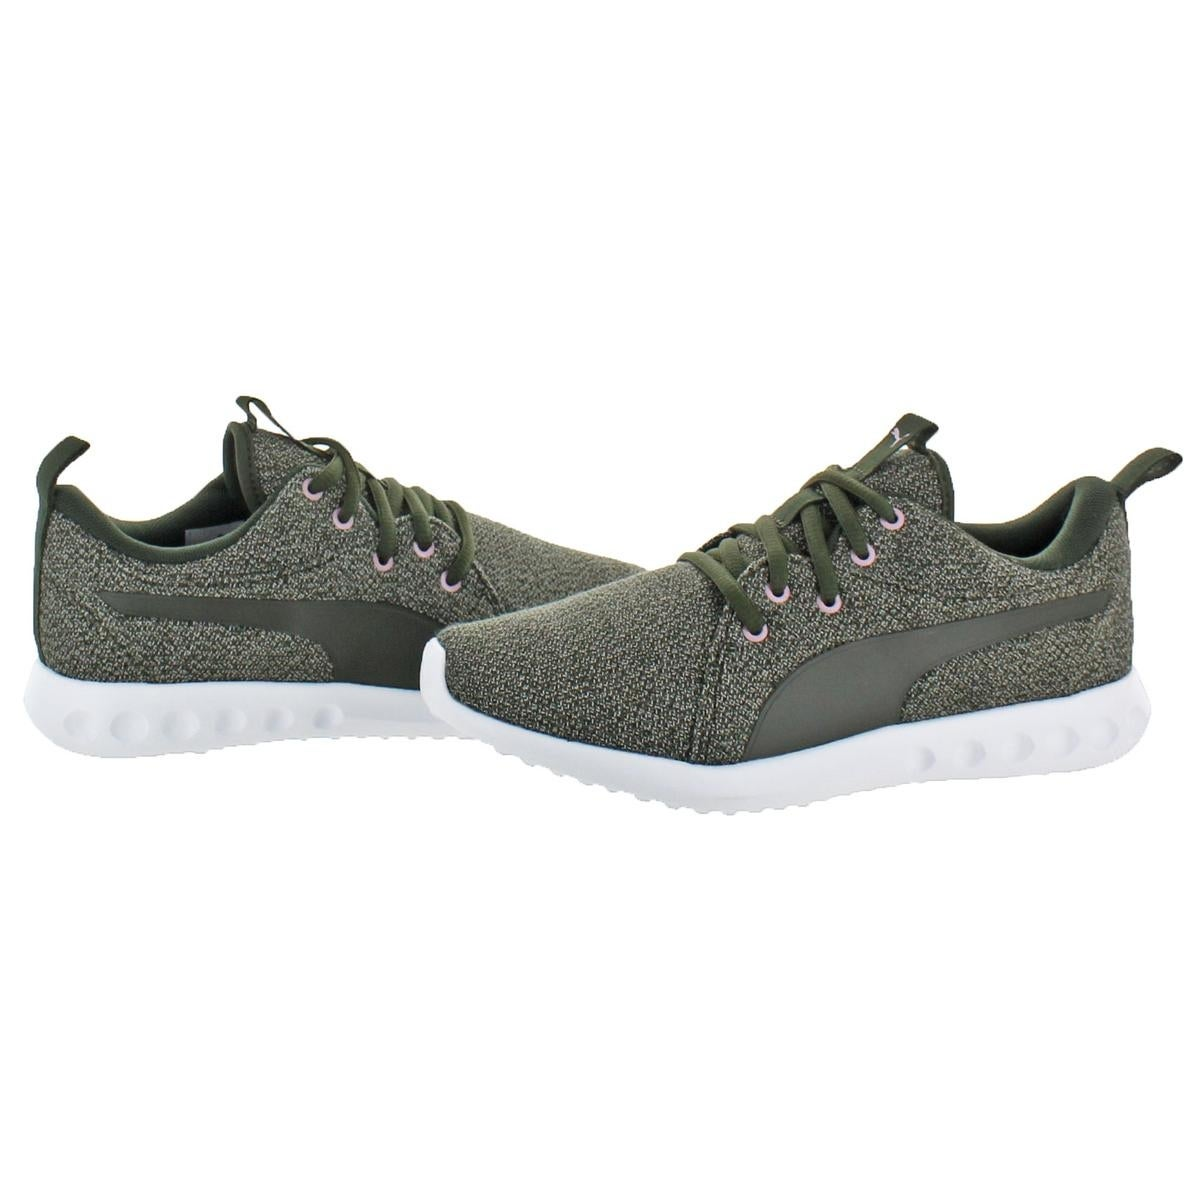 c24dfd07366 Shop Puma Womens Carson 2 Knit NM Trainers SoftFoam Fitness - Free Shipping  On Orders Over  45 - Overstock - 23486373